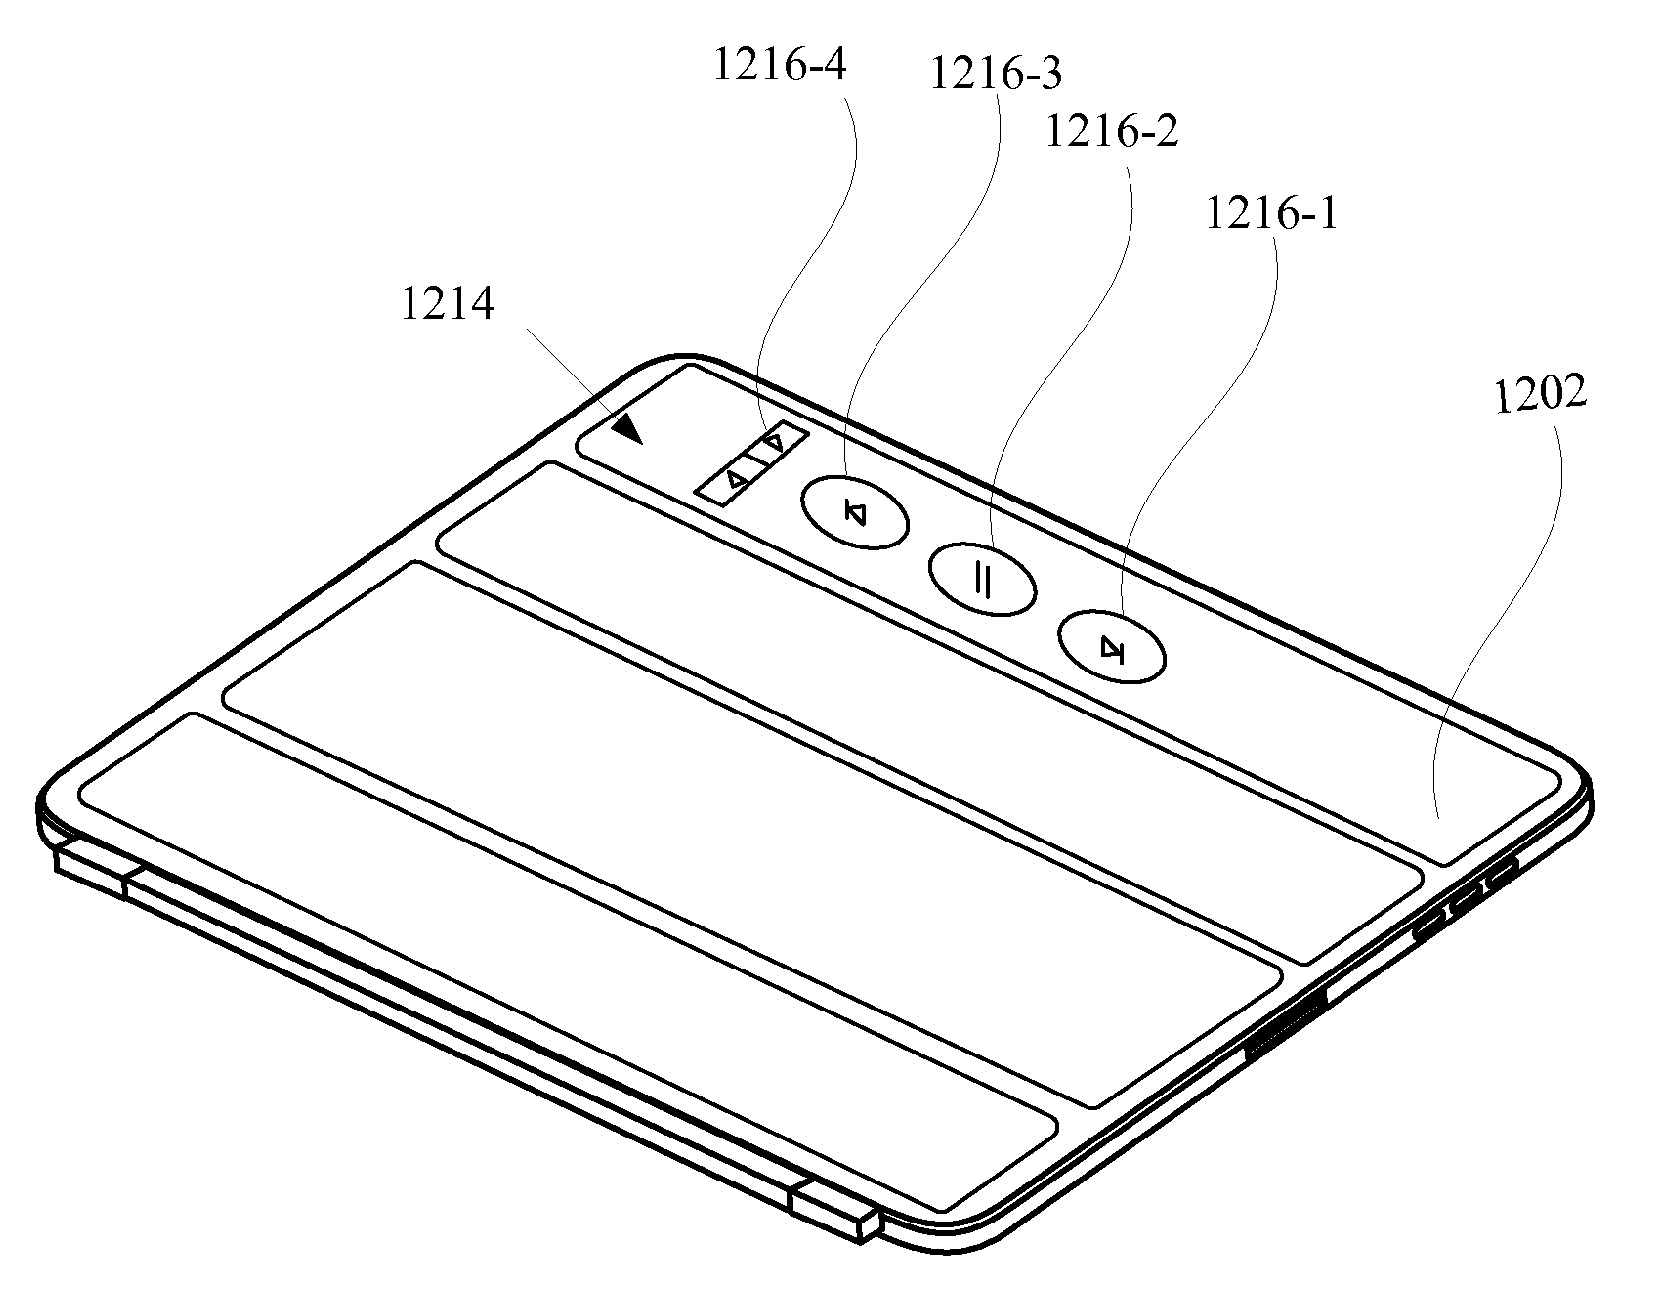 Apple seethrough Smart Cover patent drawing 002